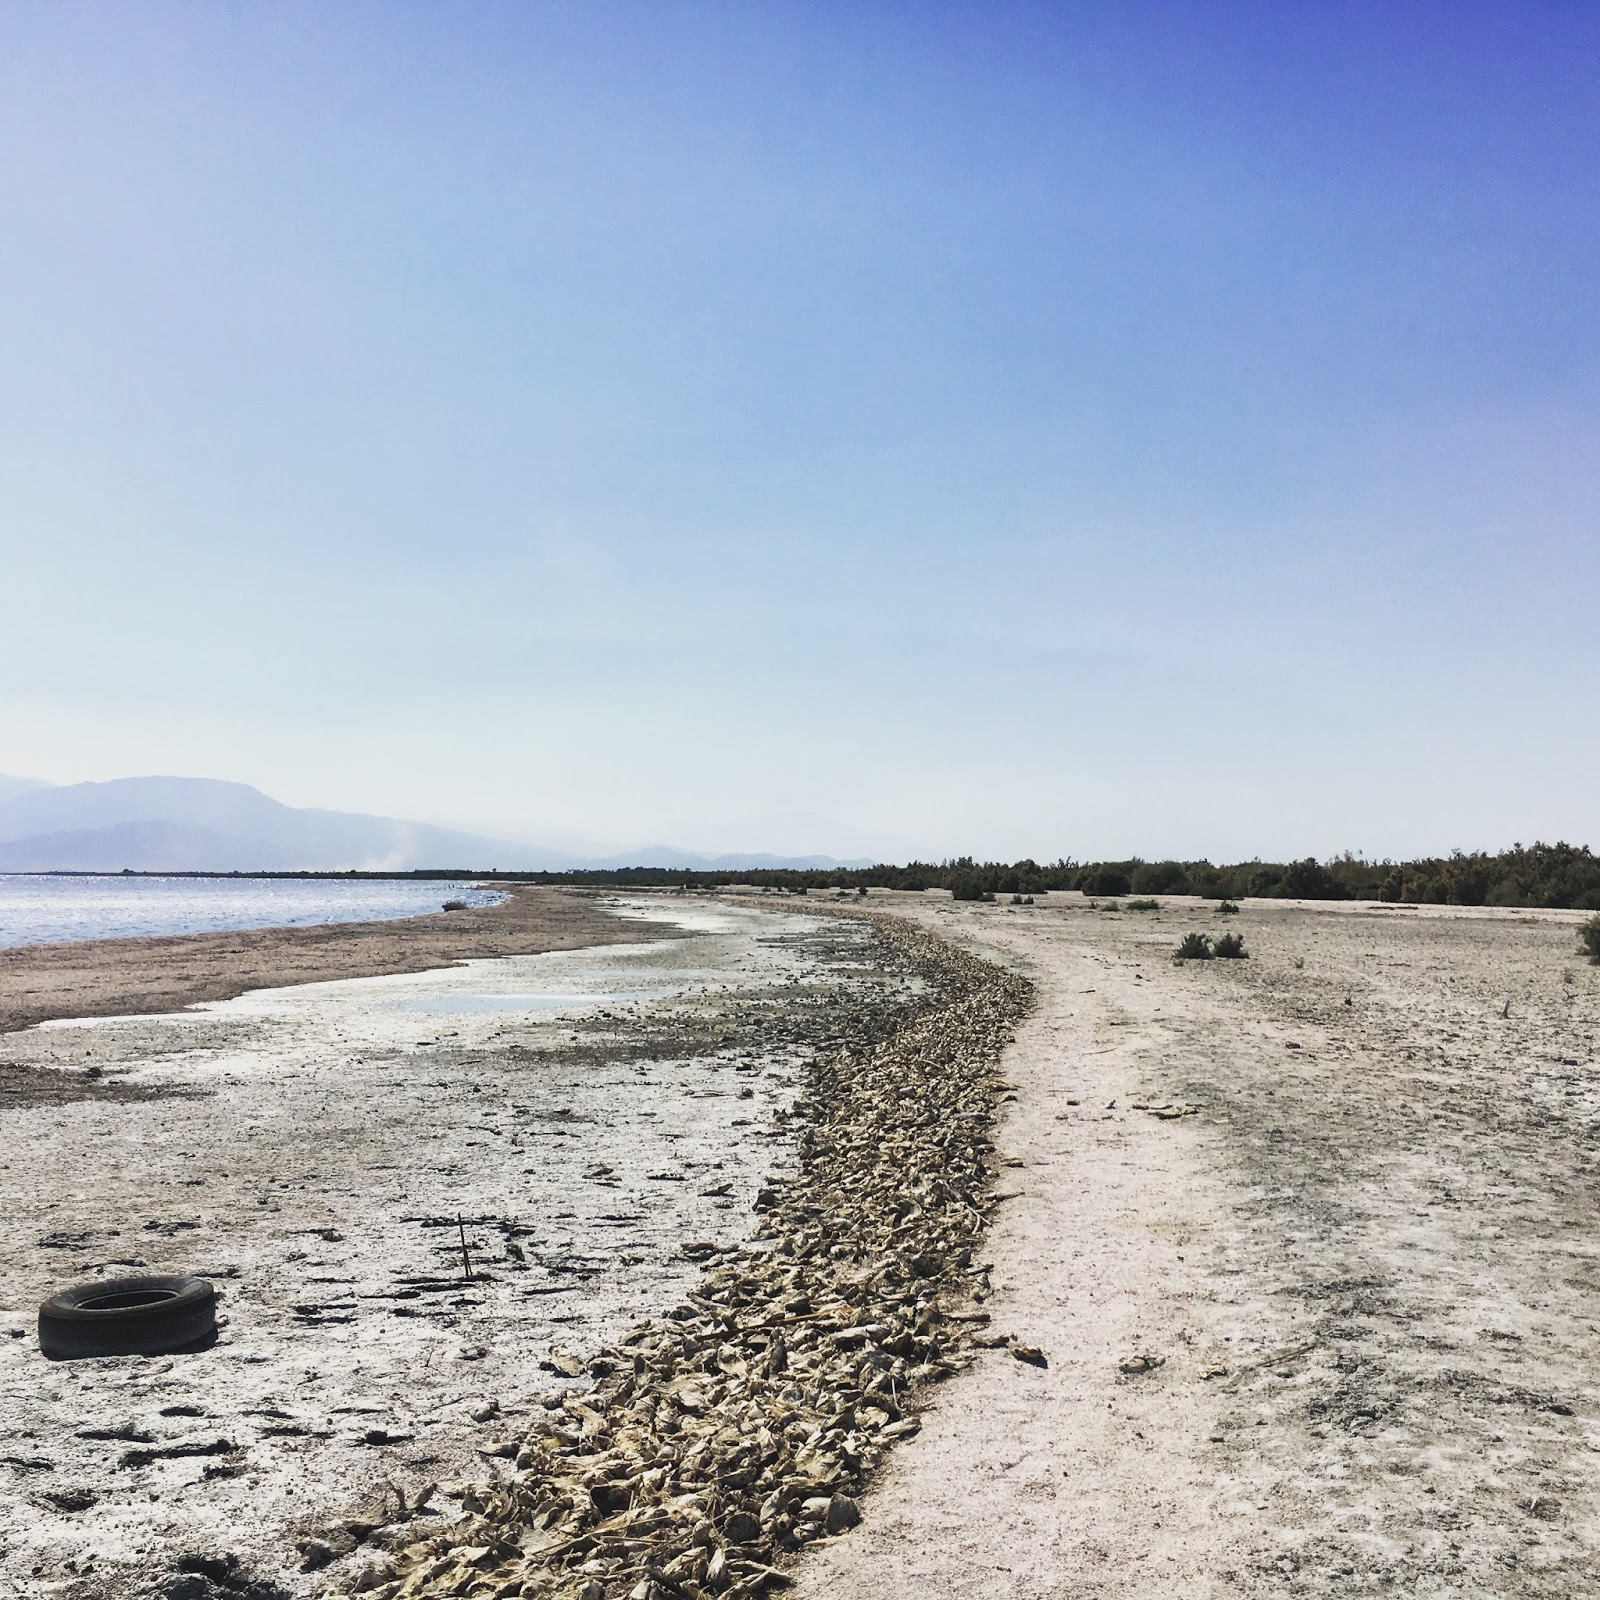 The Salton Sea, one of the least fresh places in California.